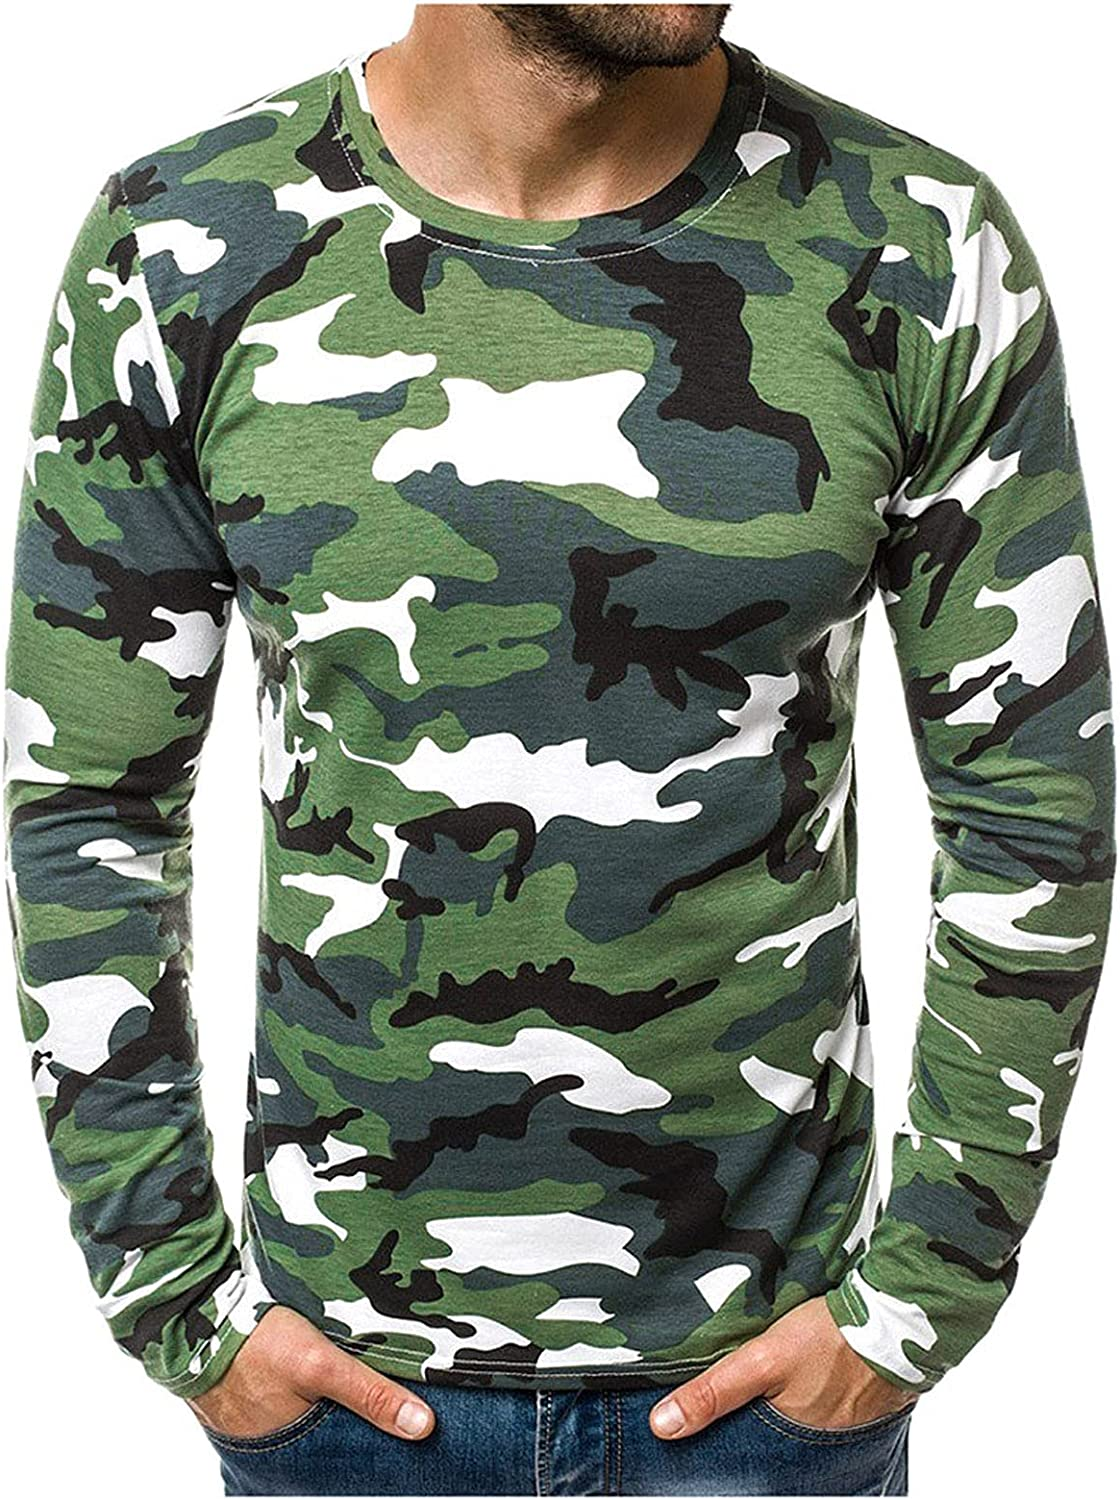 Long Sleeve Work Shirts for Men Classic Tee Summer Slim Casual Camouflage Printed T-Shirt Top Blouse